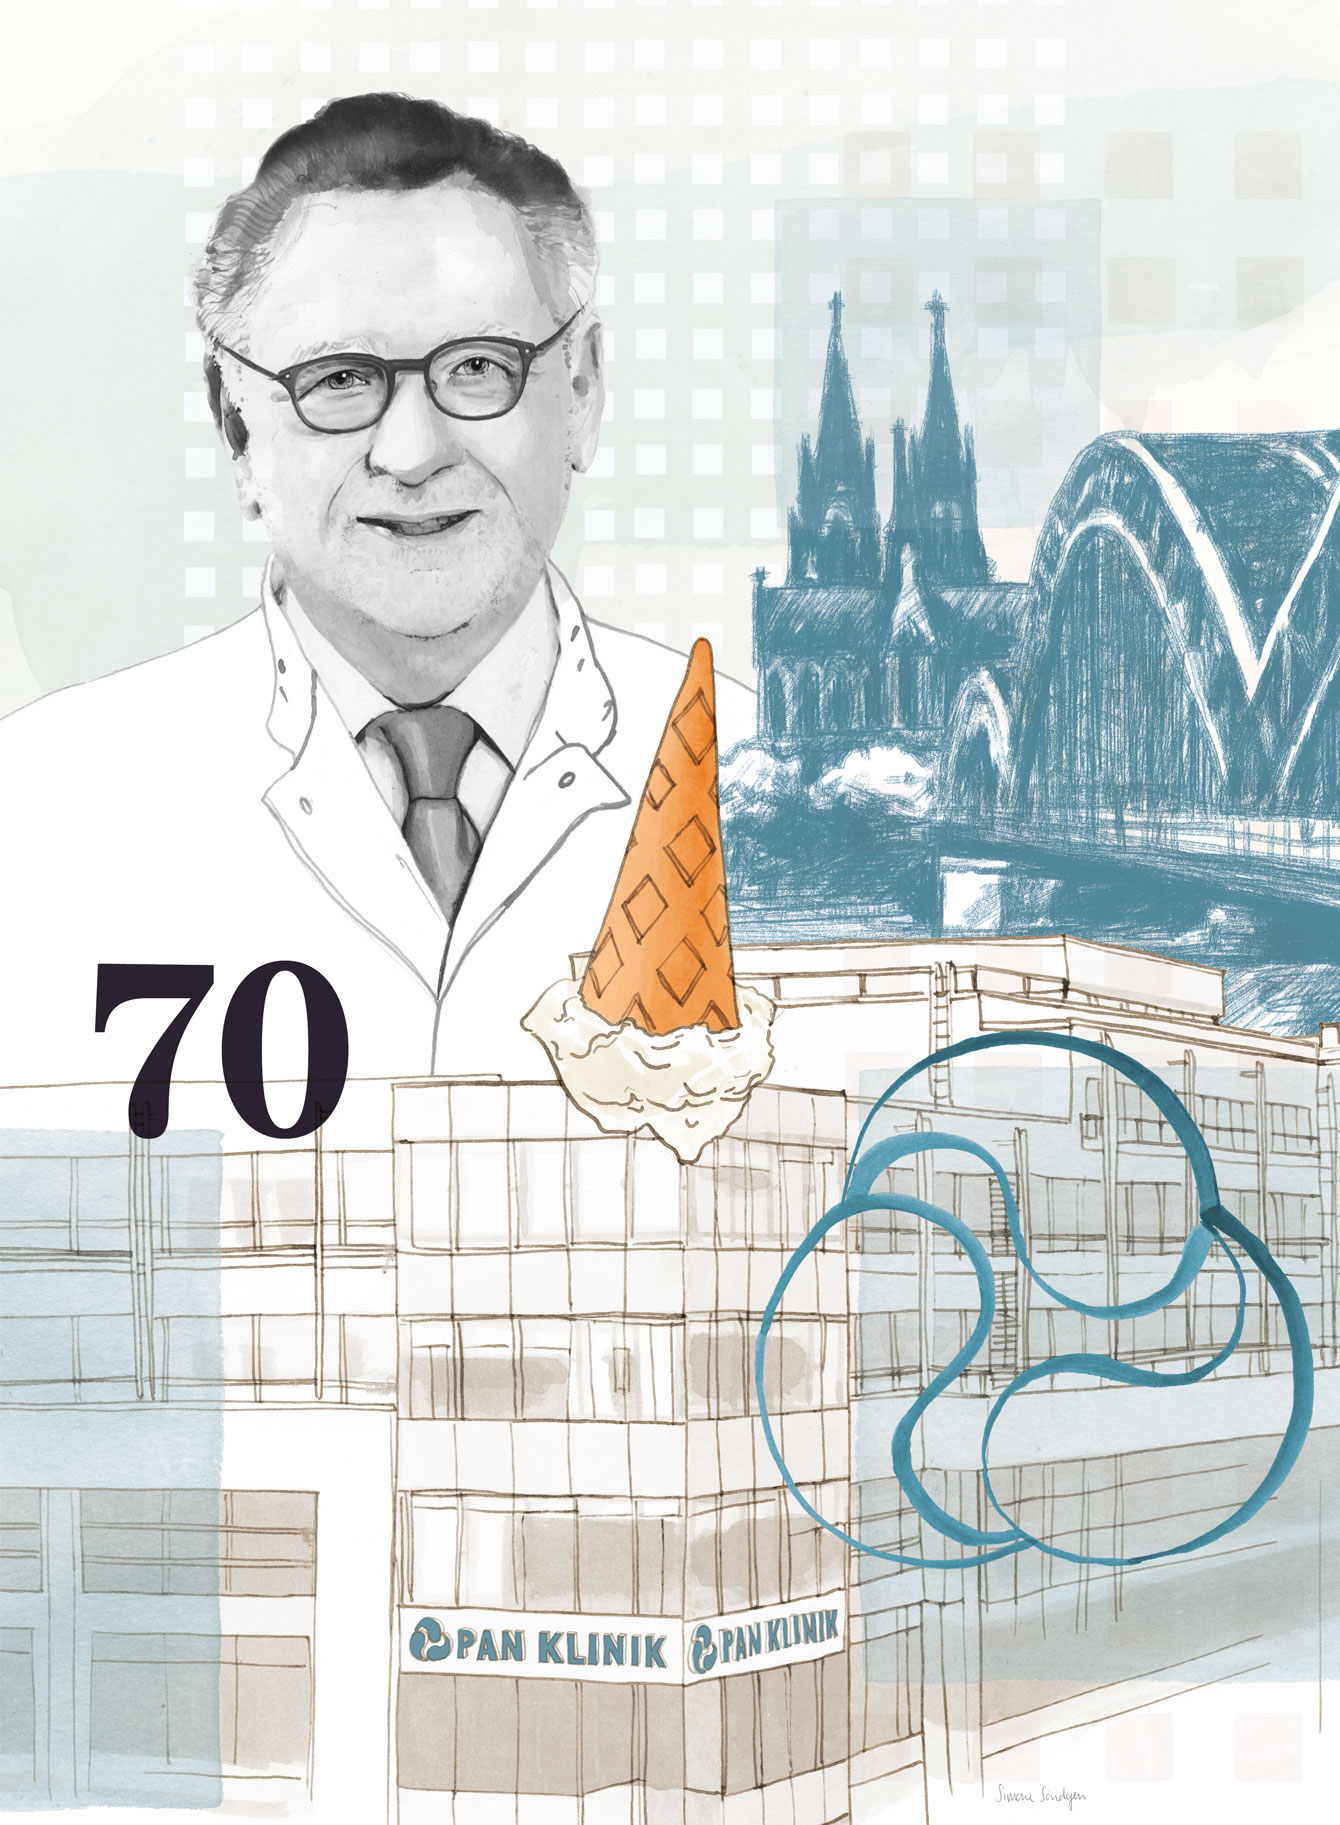 Agentur Rincon - Panklinik - Dr. Palm - Köln - Illustration